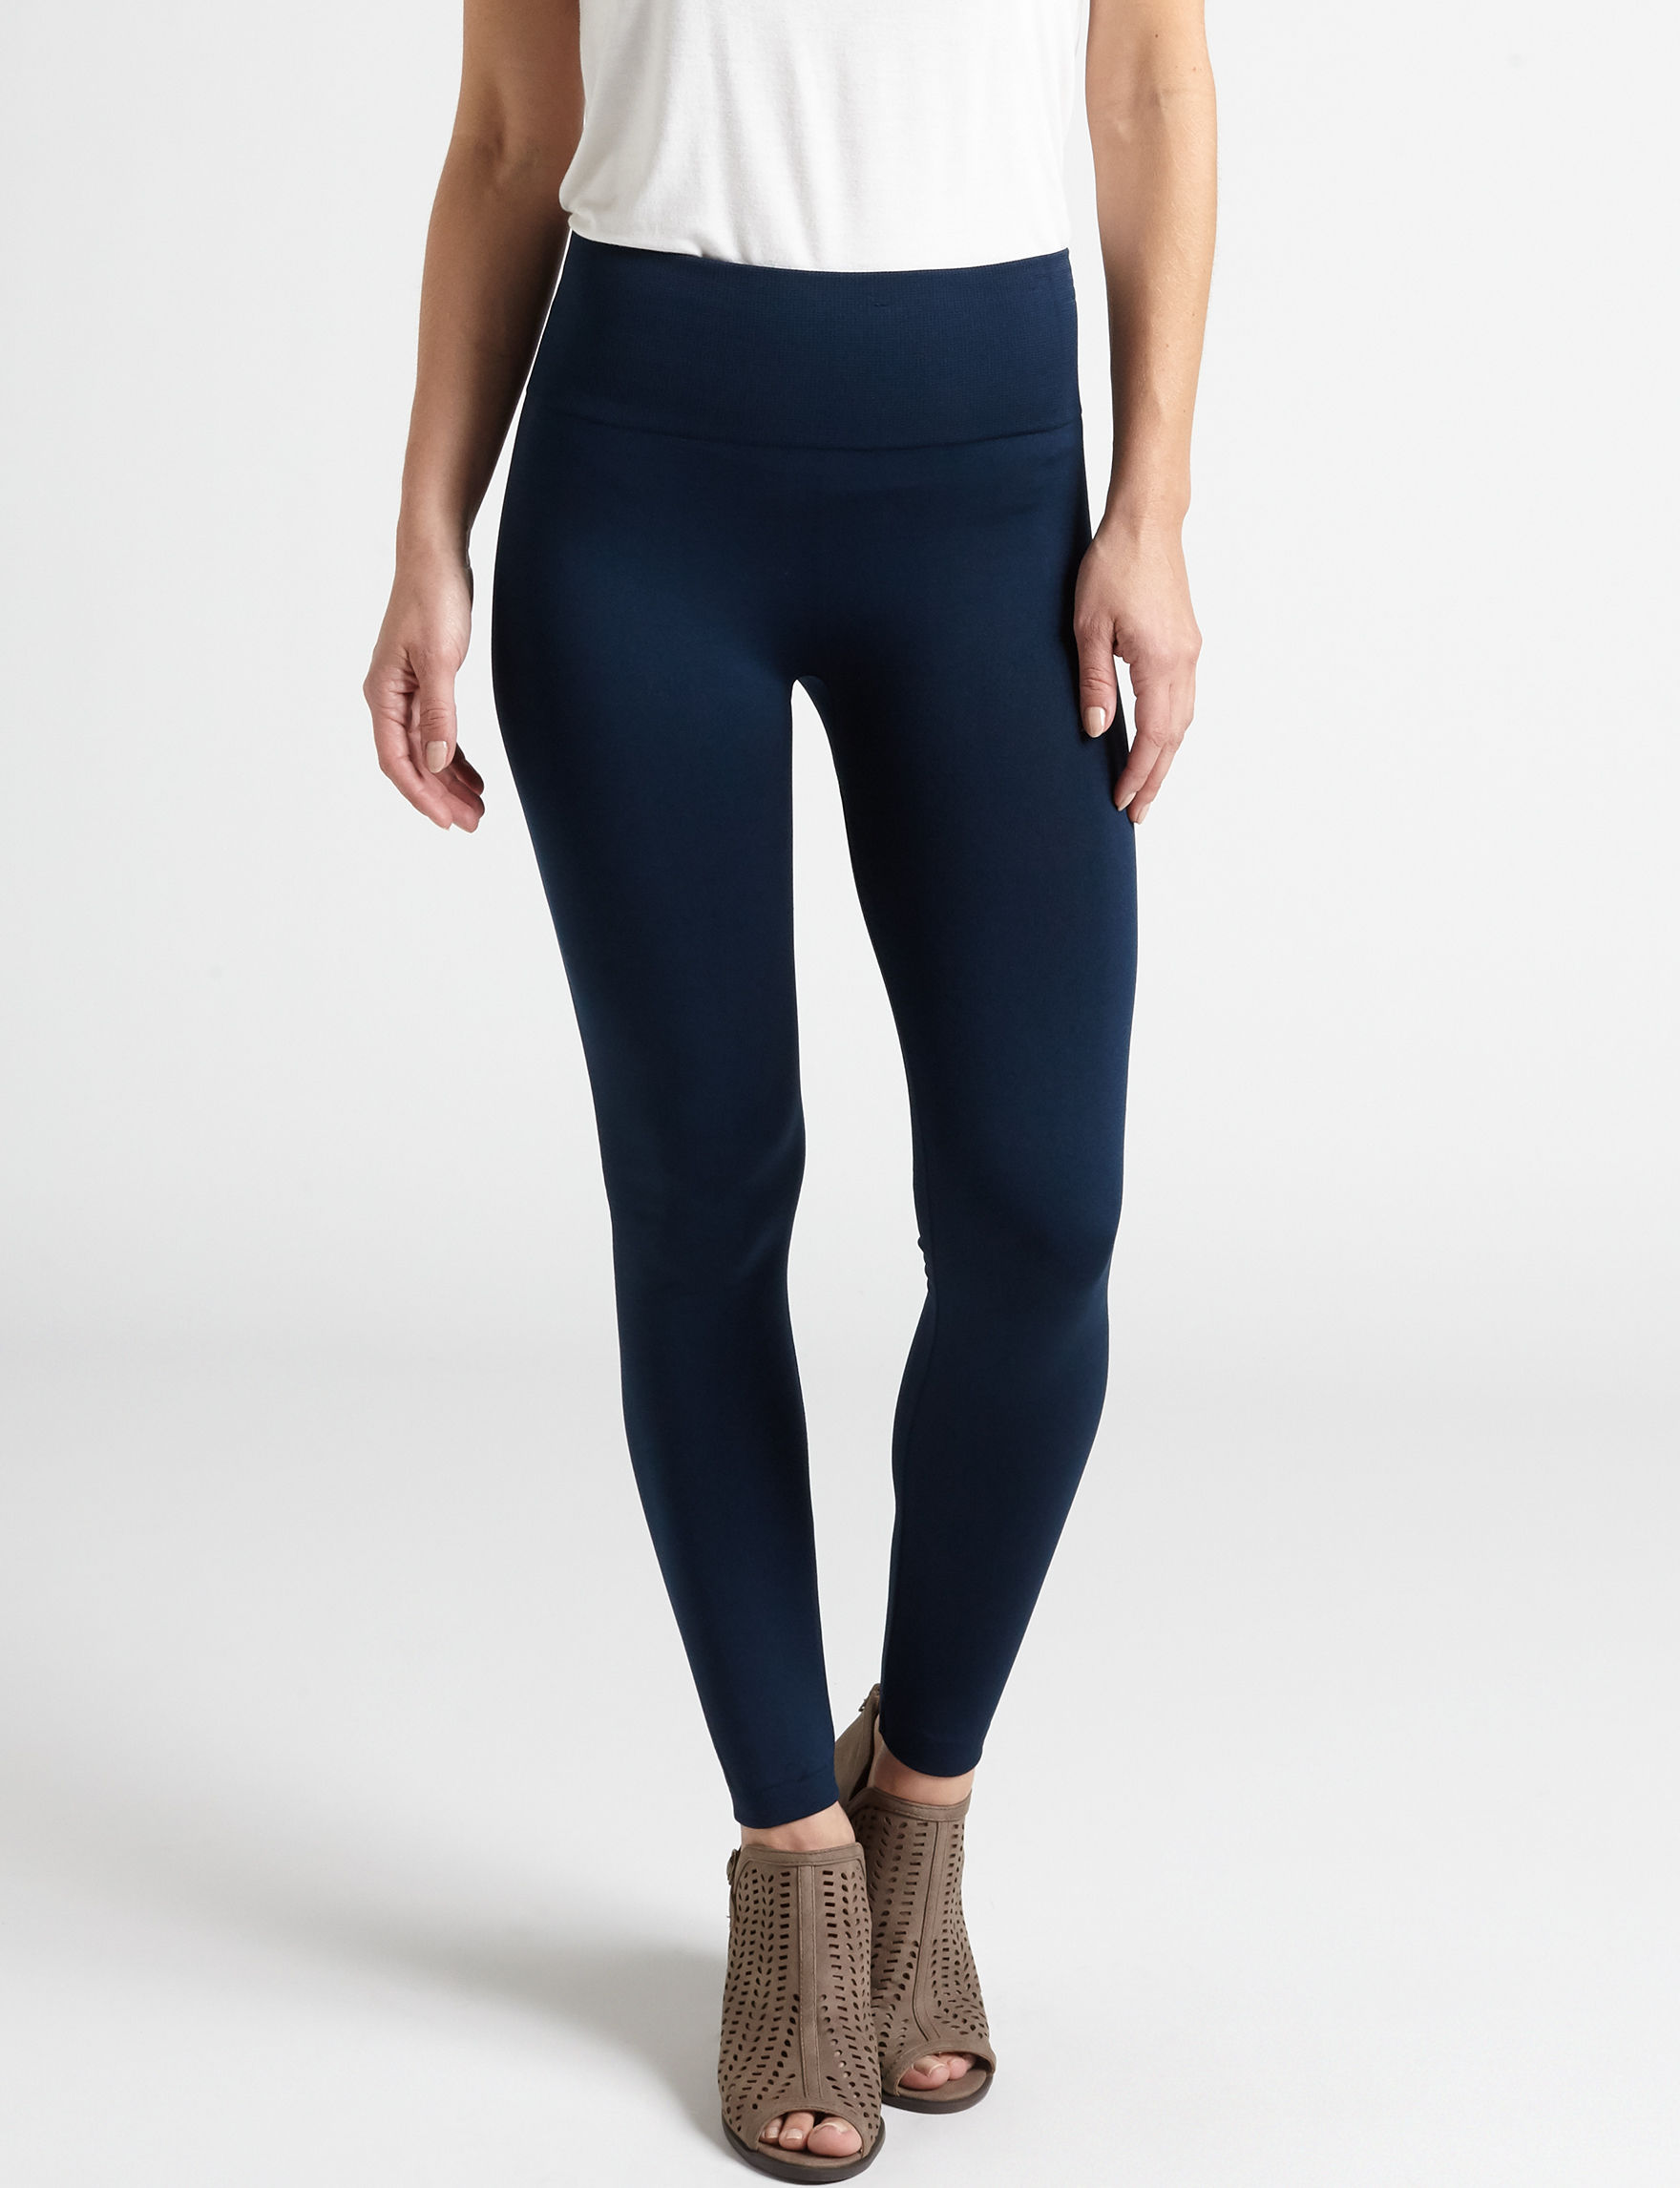 One 5 One Navy Leggings